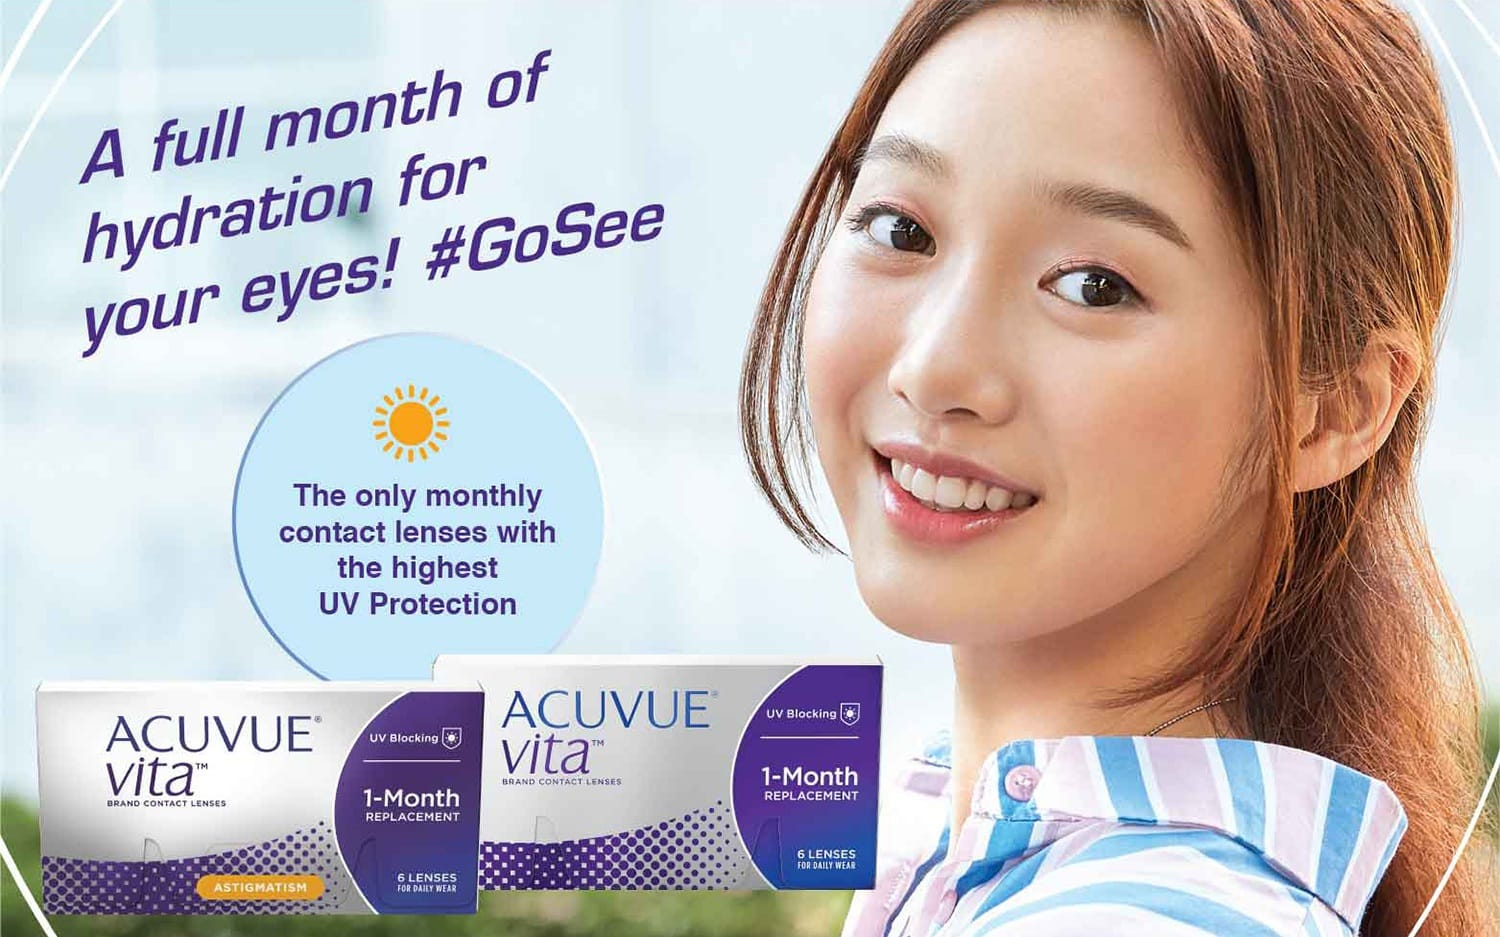 A full month of hydration for your eyes! #GoSee